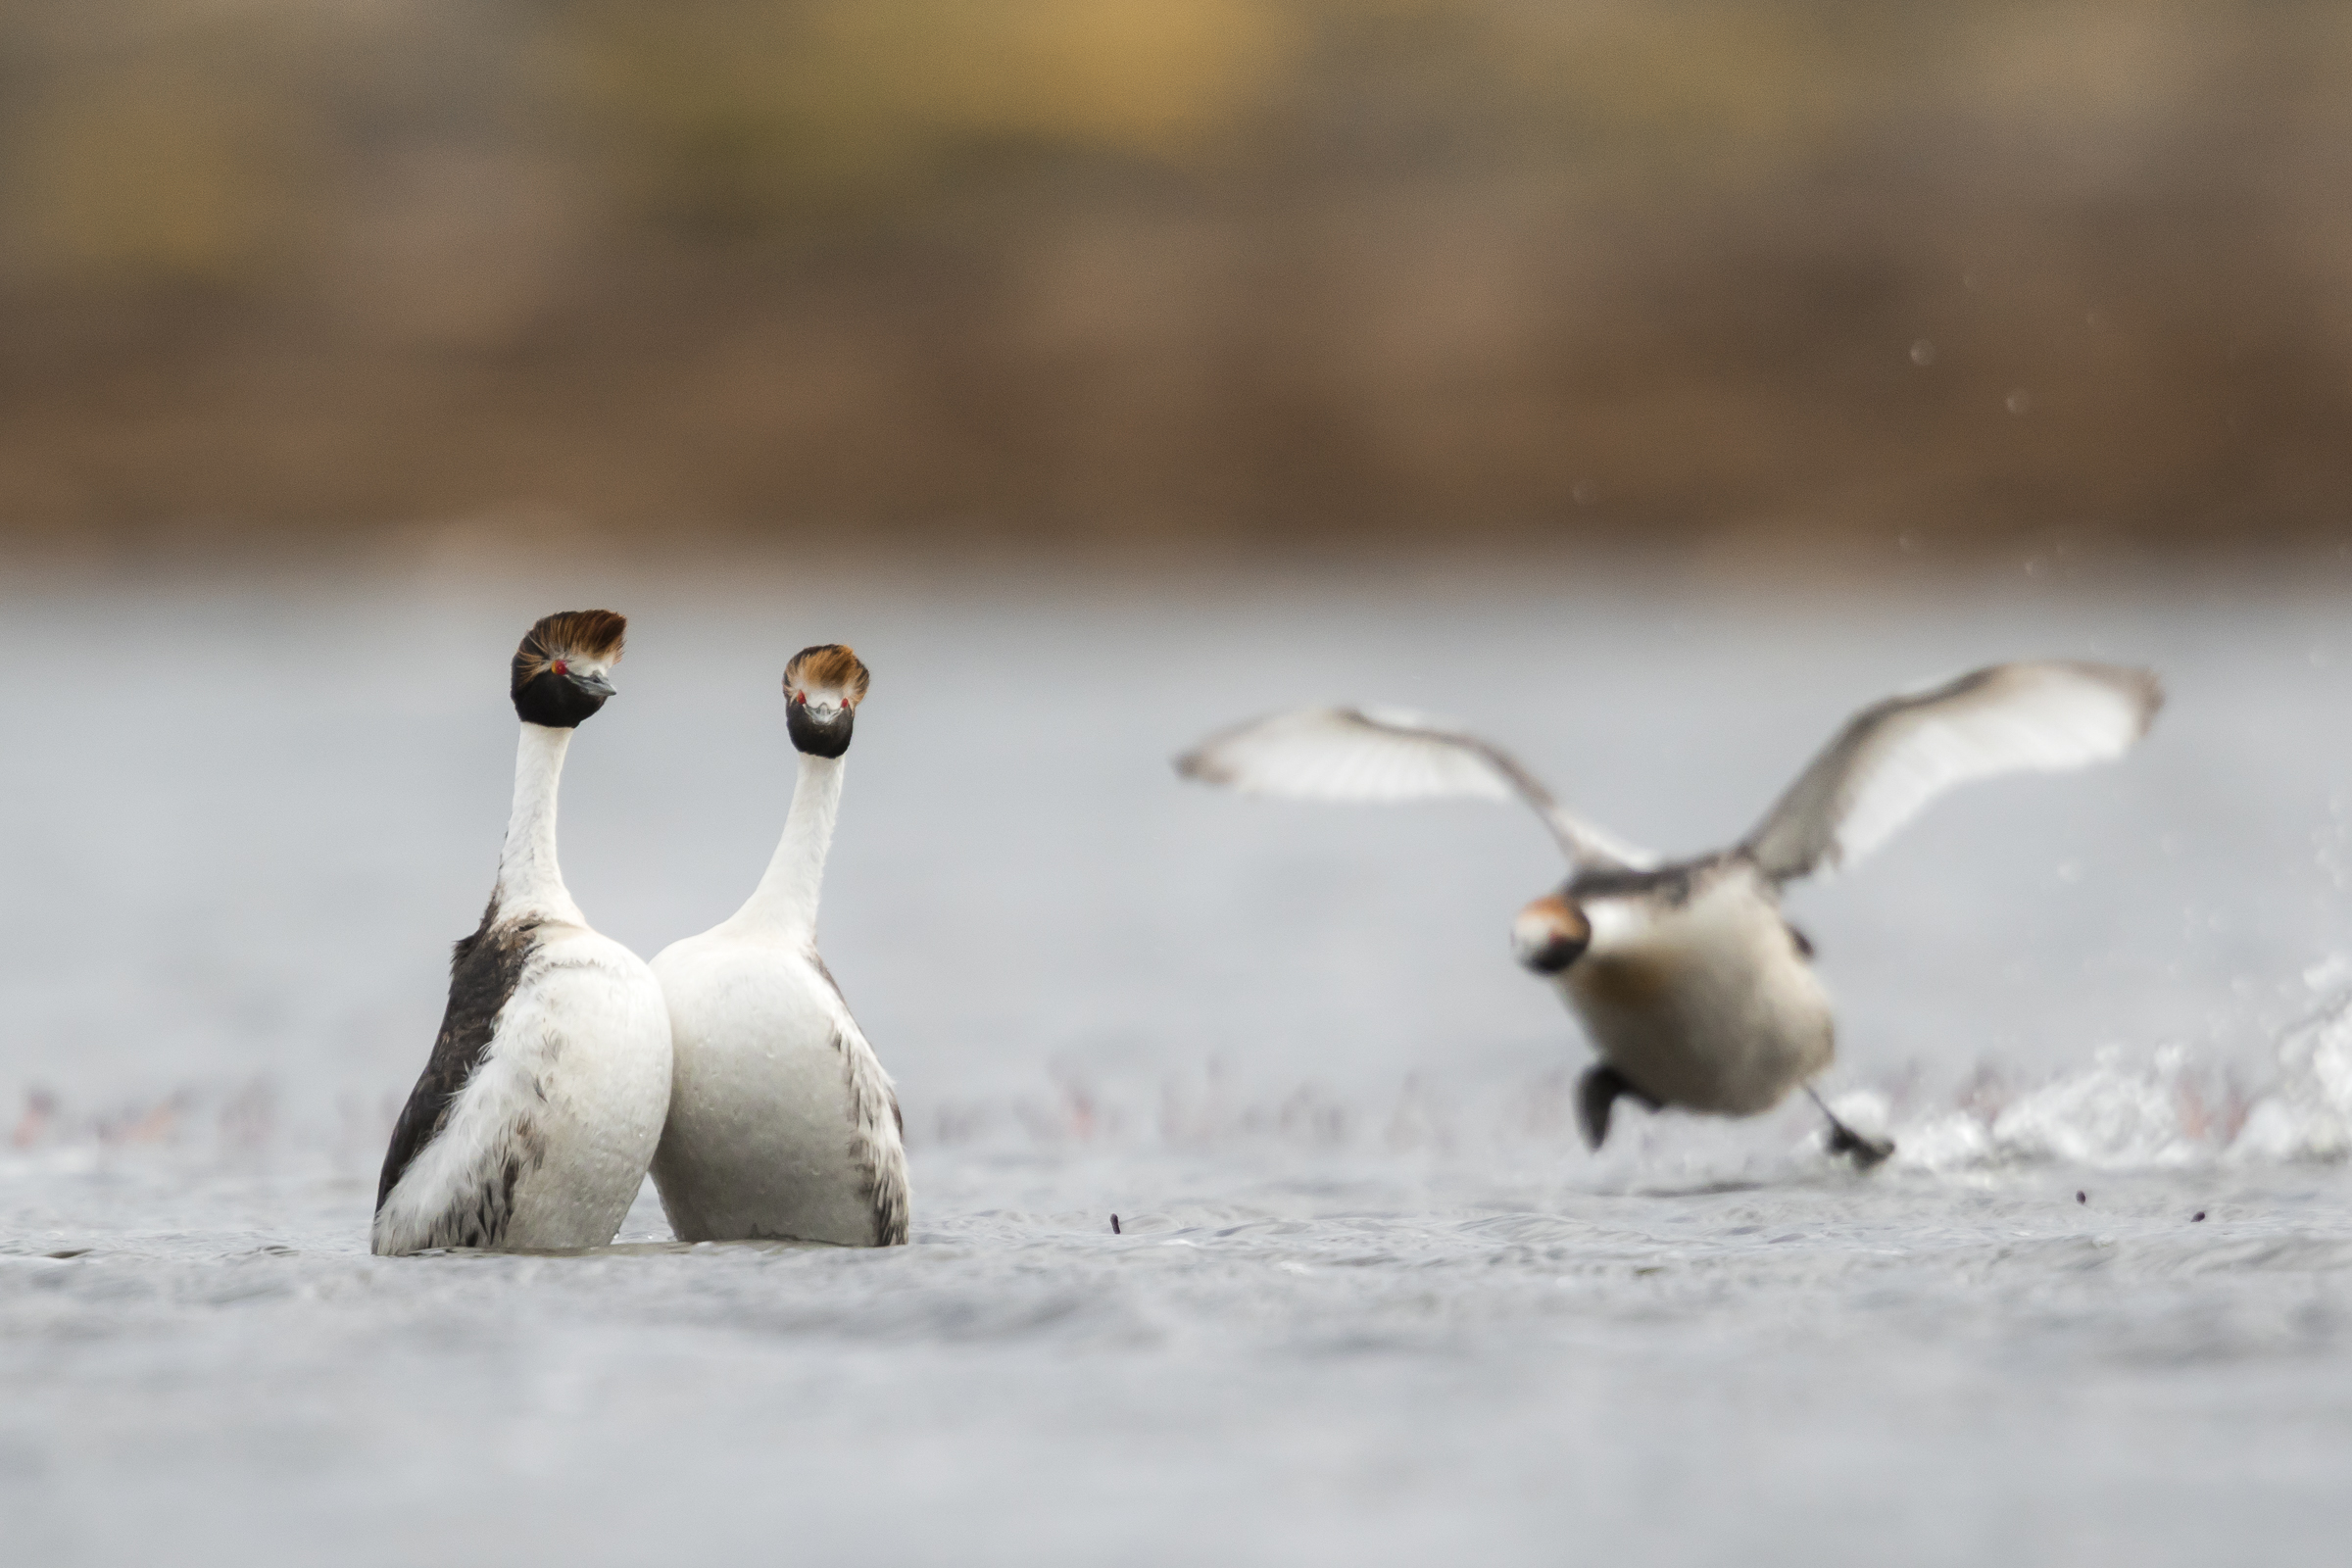 Competition for mates and breeding platforms is strong, and hooded grebes frequently fight for access.